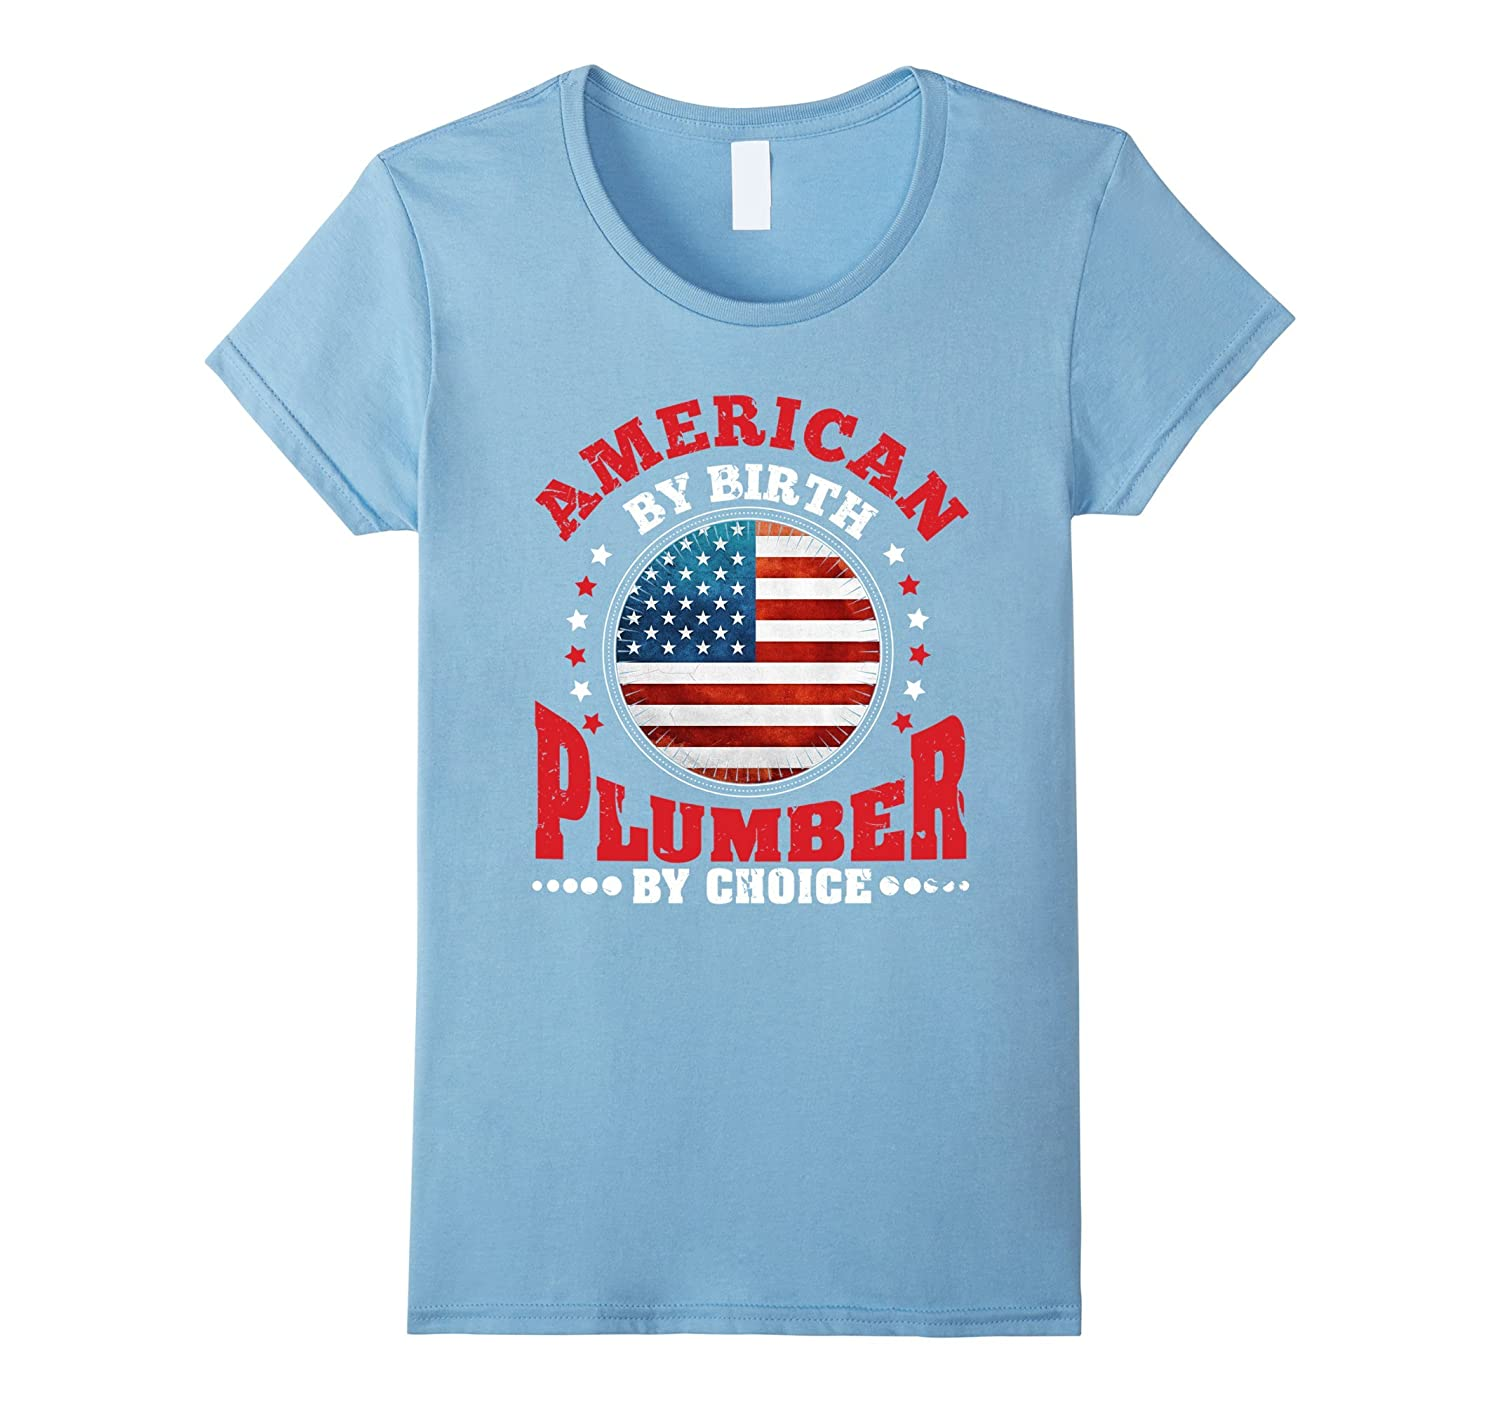 American by birth Plumber by Choice T Shirt with Flag